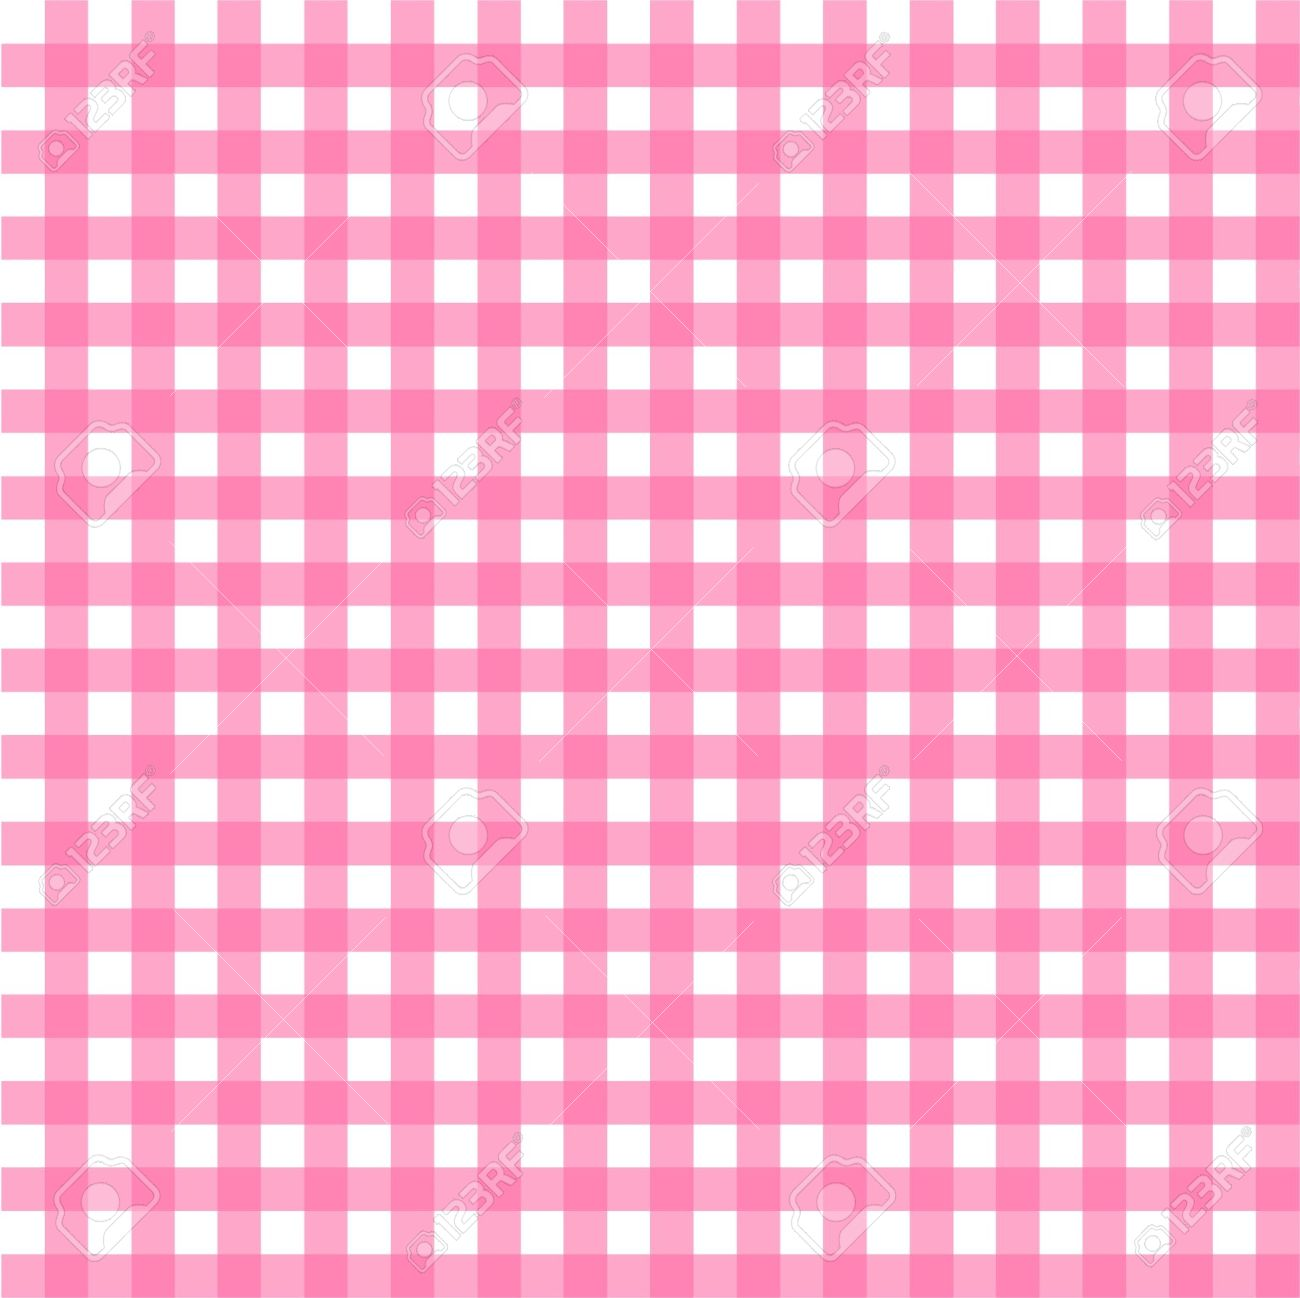 Pink checkered clipart.